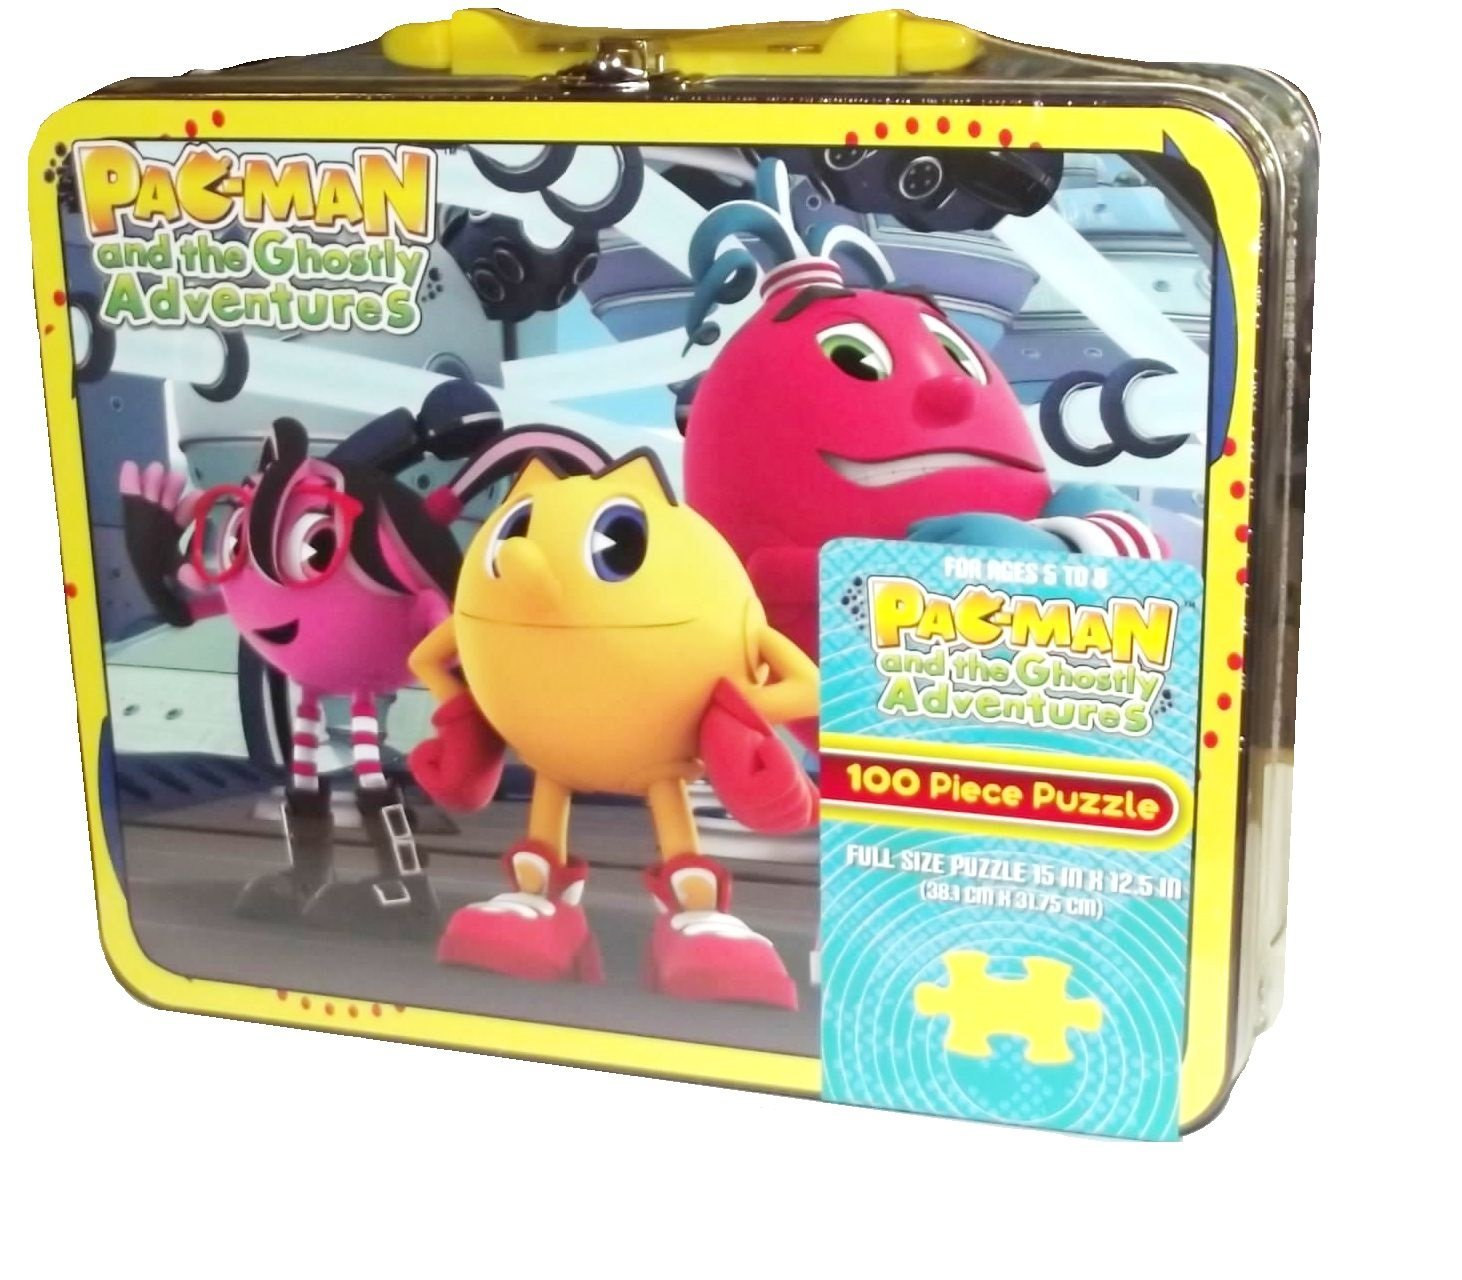 Pac-Man and the Ghostly Adventures Group 100 Piece Puzzle Tin By Pressman Toy Corp Ship from US by